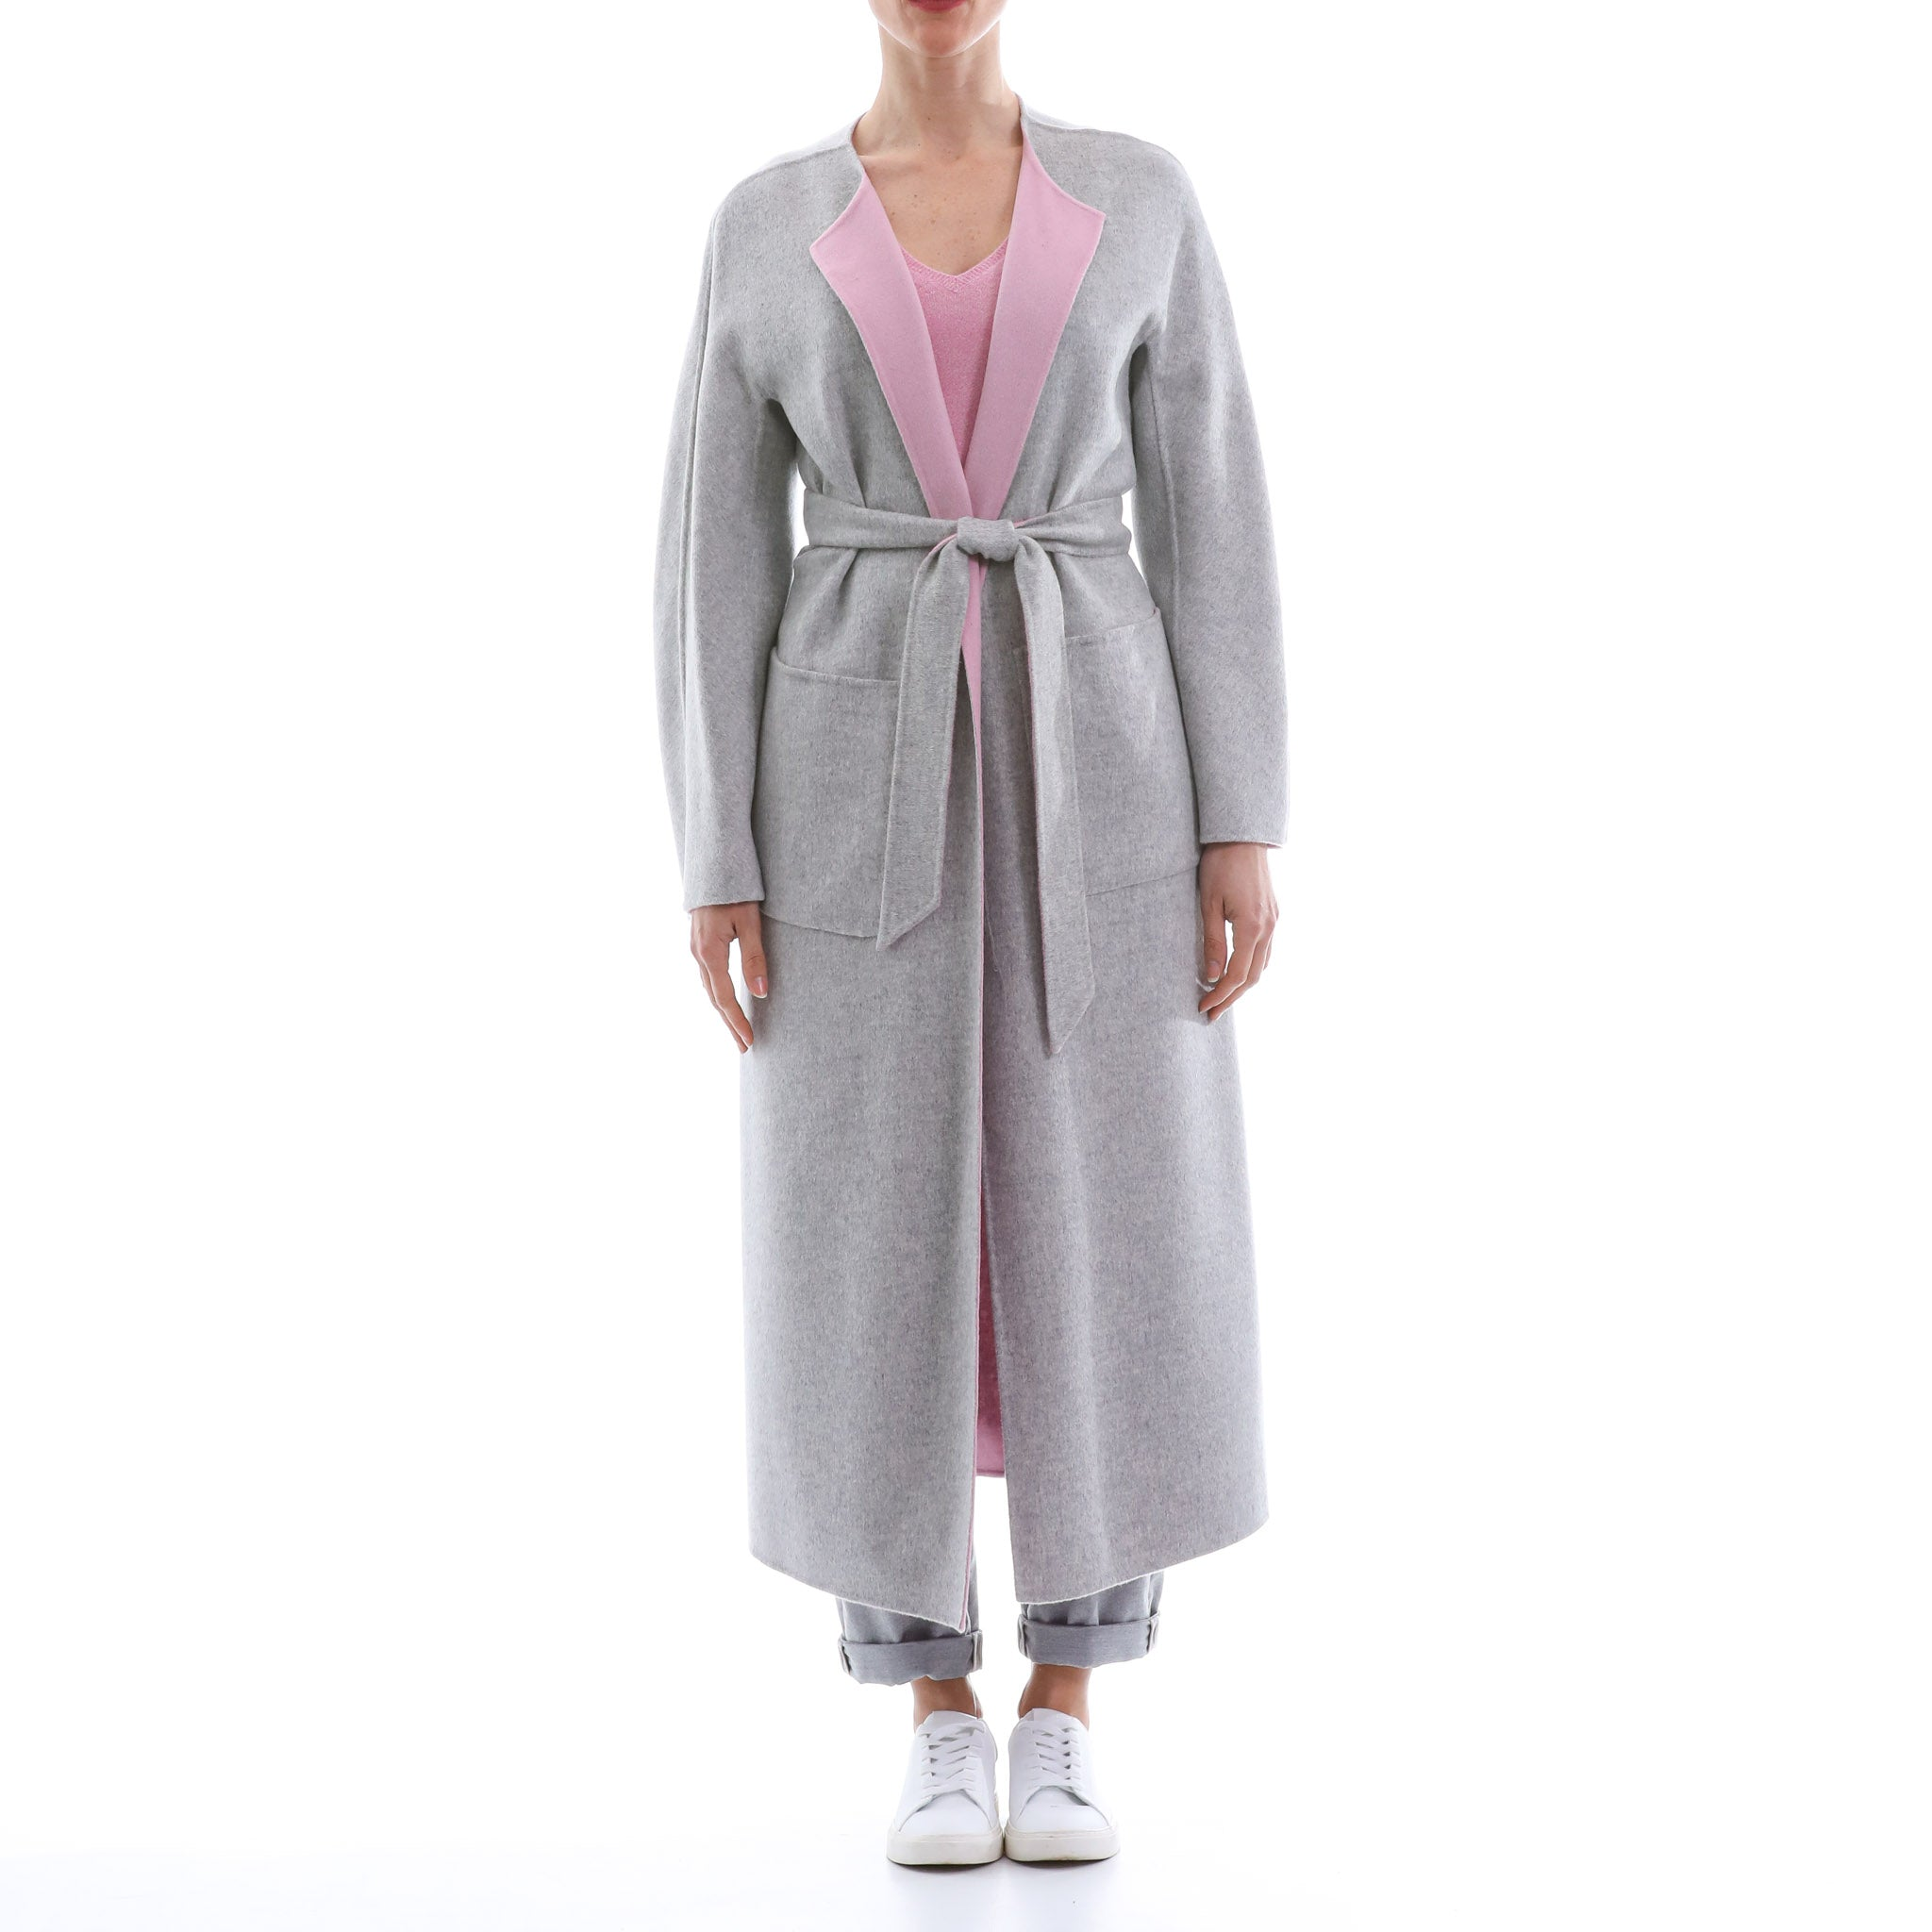 Max Mara Studio Reversible Wool Coat